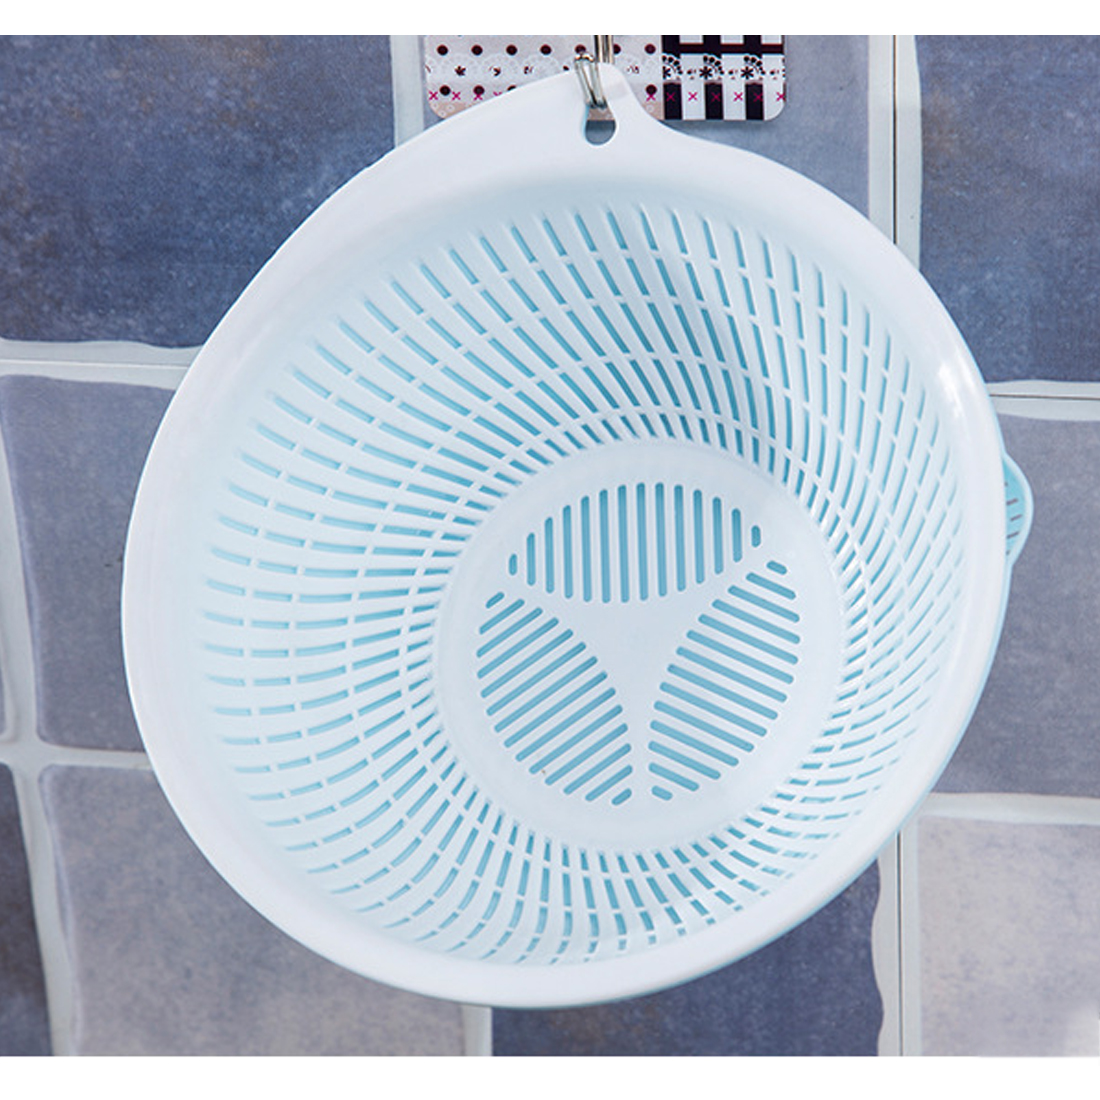 HIPSTEEN 3Pcs Round Plastic Kitchen Drain Basket Vegetables Fruit ...